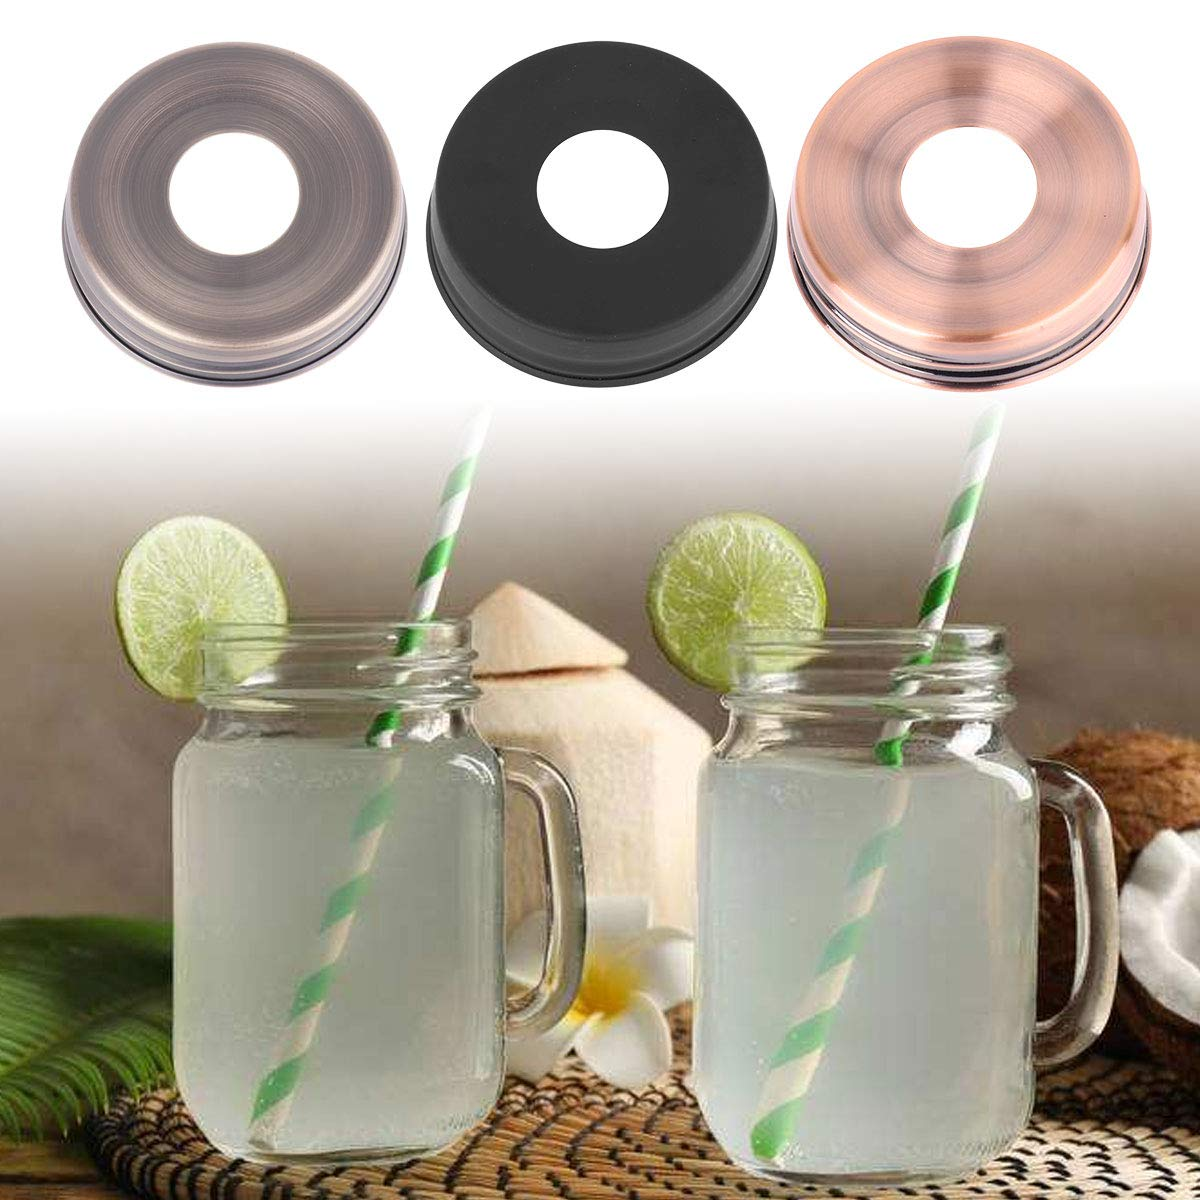 CHICTRY 2Pcs Pre-Drilled Mason Jar Lids Stainless Steel Soap Dispenser Lids Adapters for Regular Mouth Ball Canning Jars or other DIY Crafts Black&Grey One Size